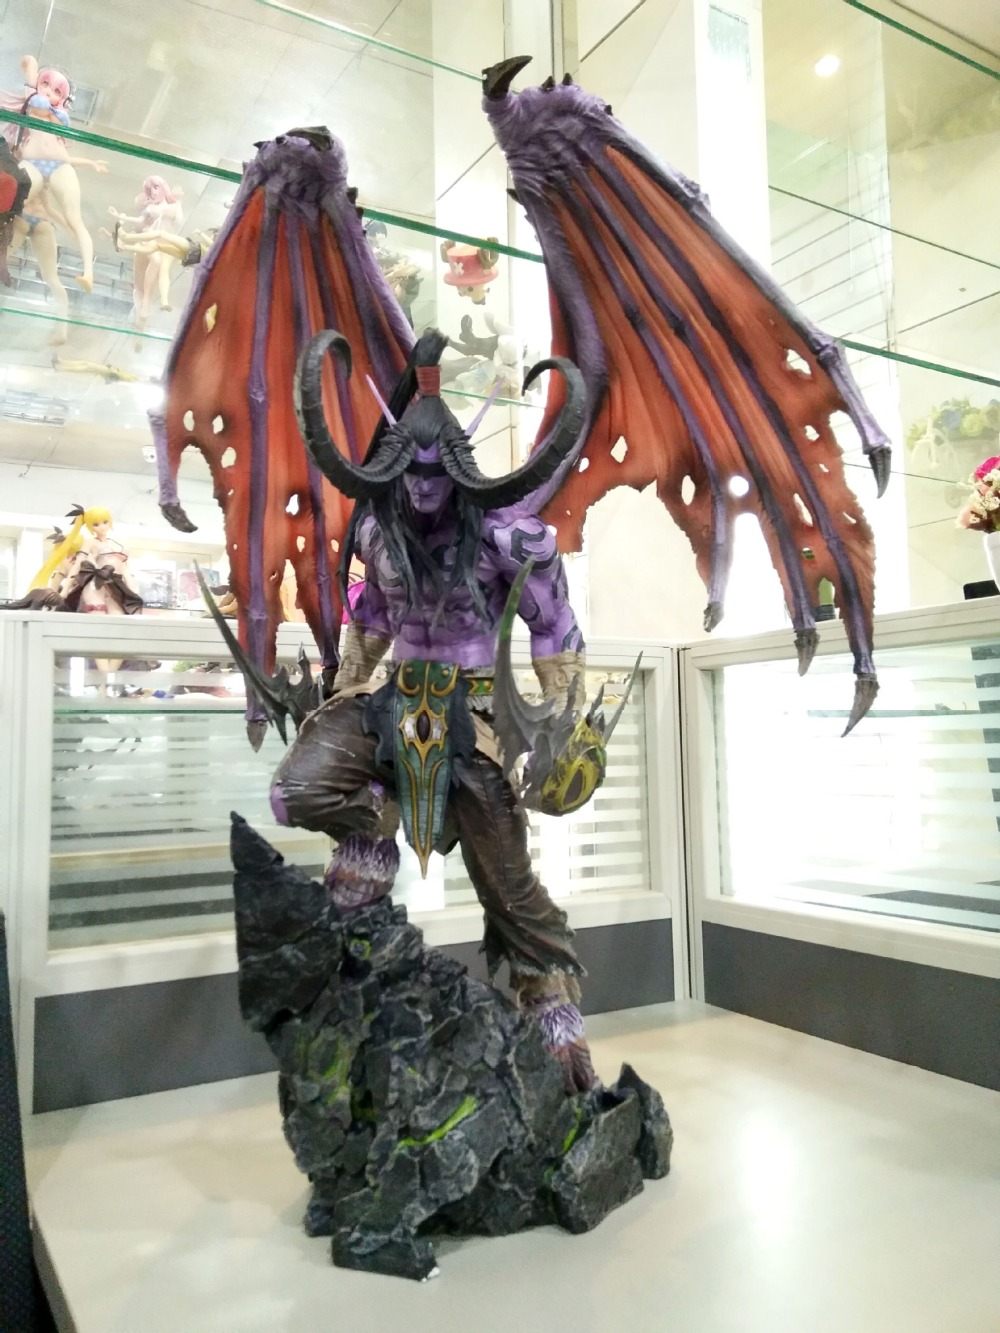 [New] Limited Large size 60cm WOW Illidan gk resin statue figure collection model Original box best gift